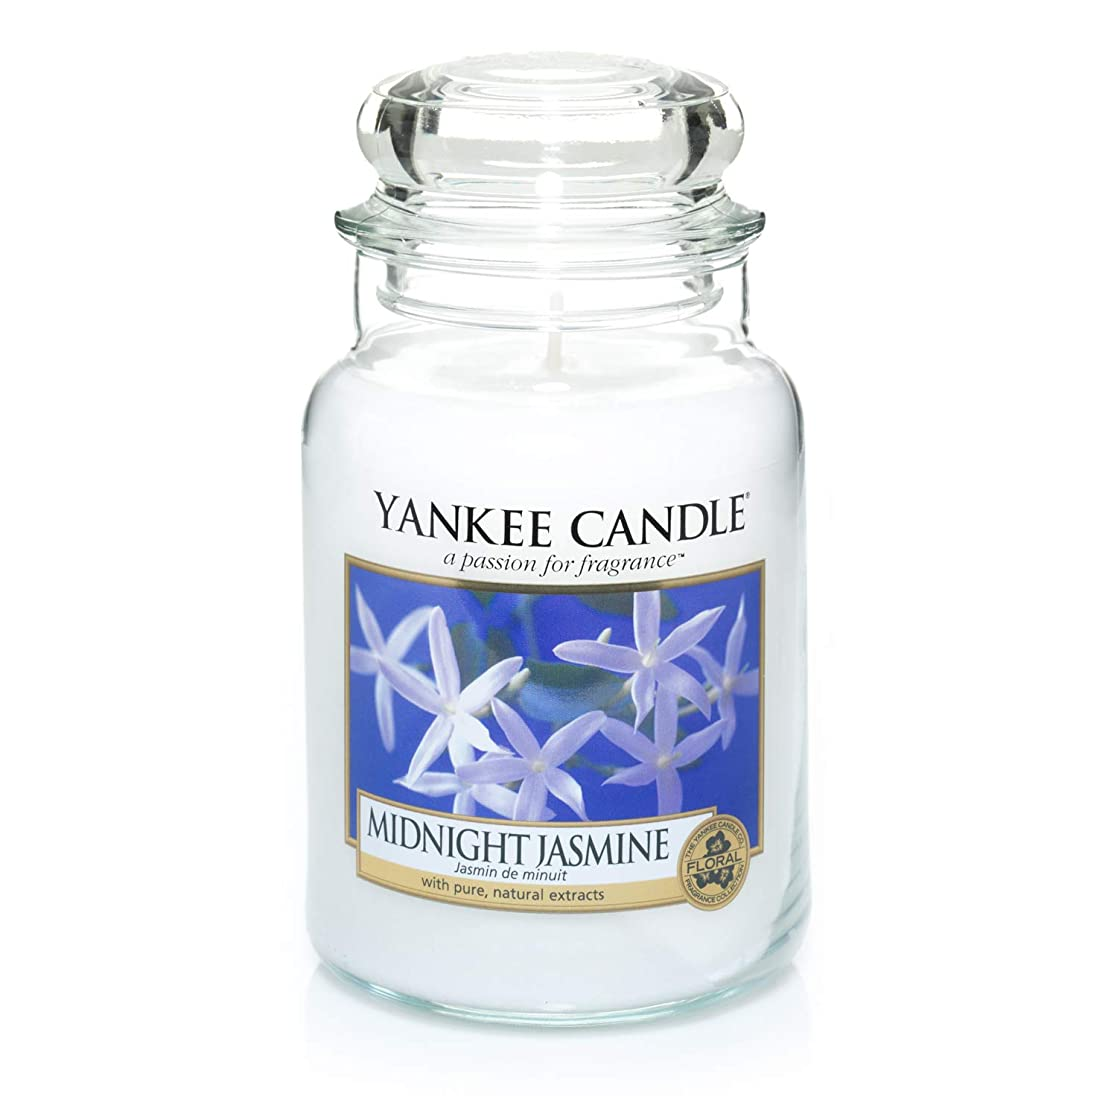 アレキサンダーグラハムベル動員する引き付けるYankee Candle Large Jar Candle, Midnight Jasmine by Yankee Candle